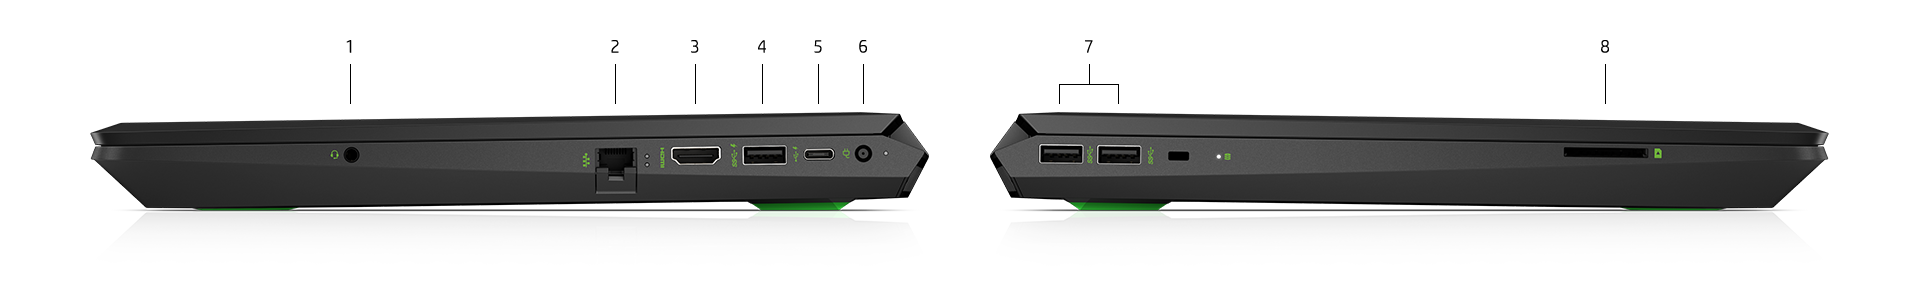 Pavilion Laptop  left and right side ports